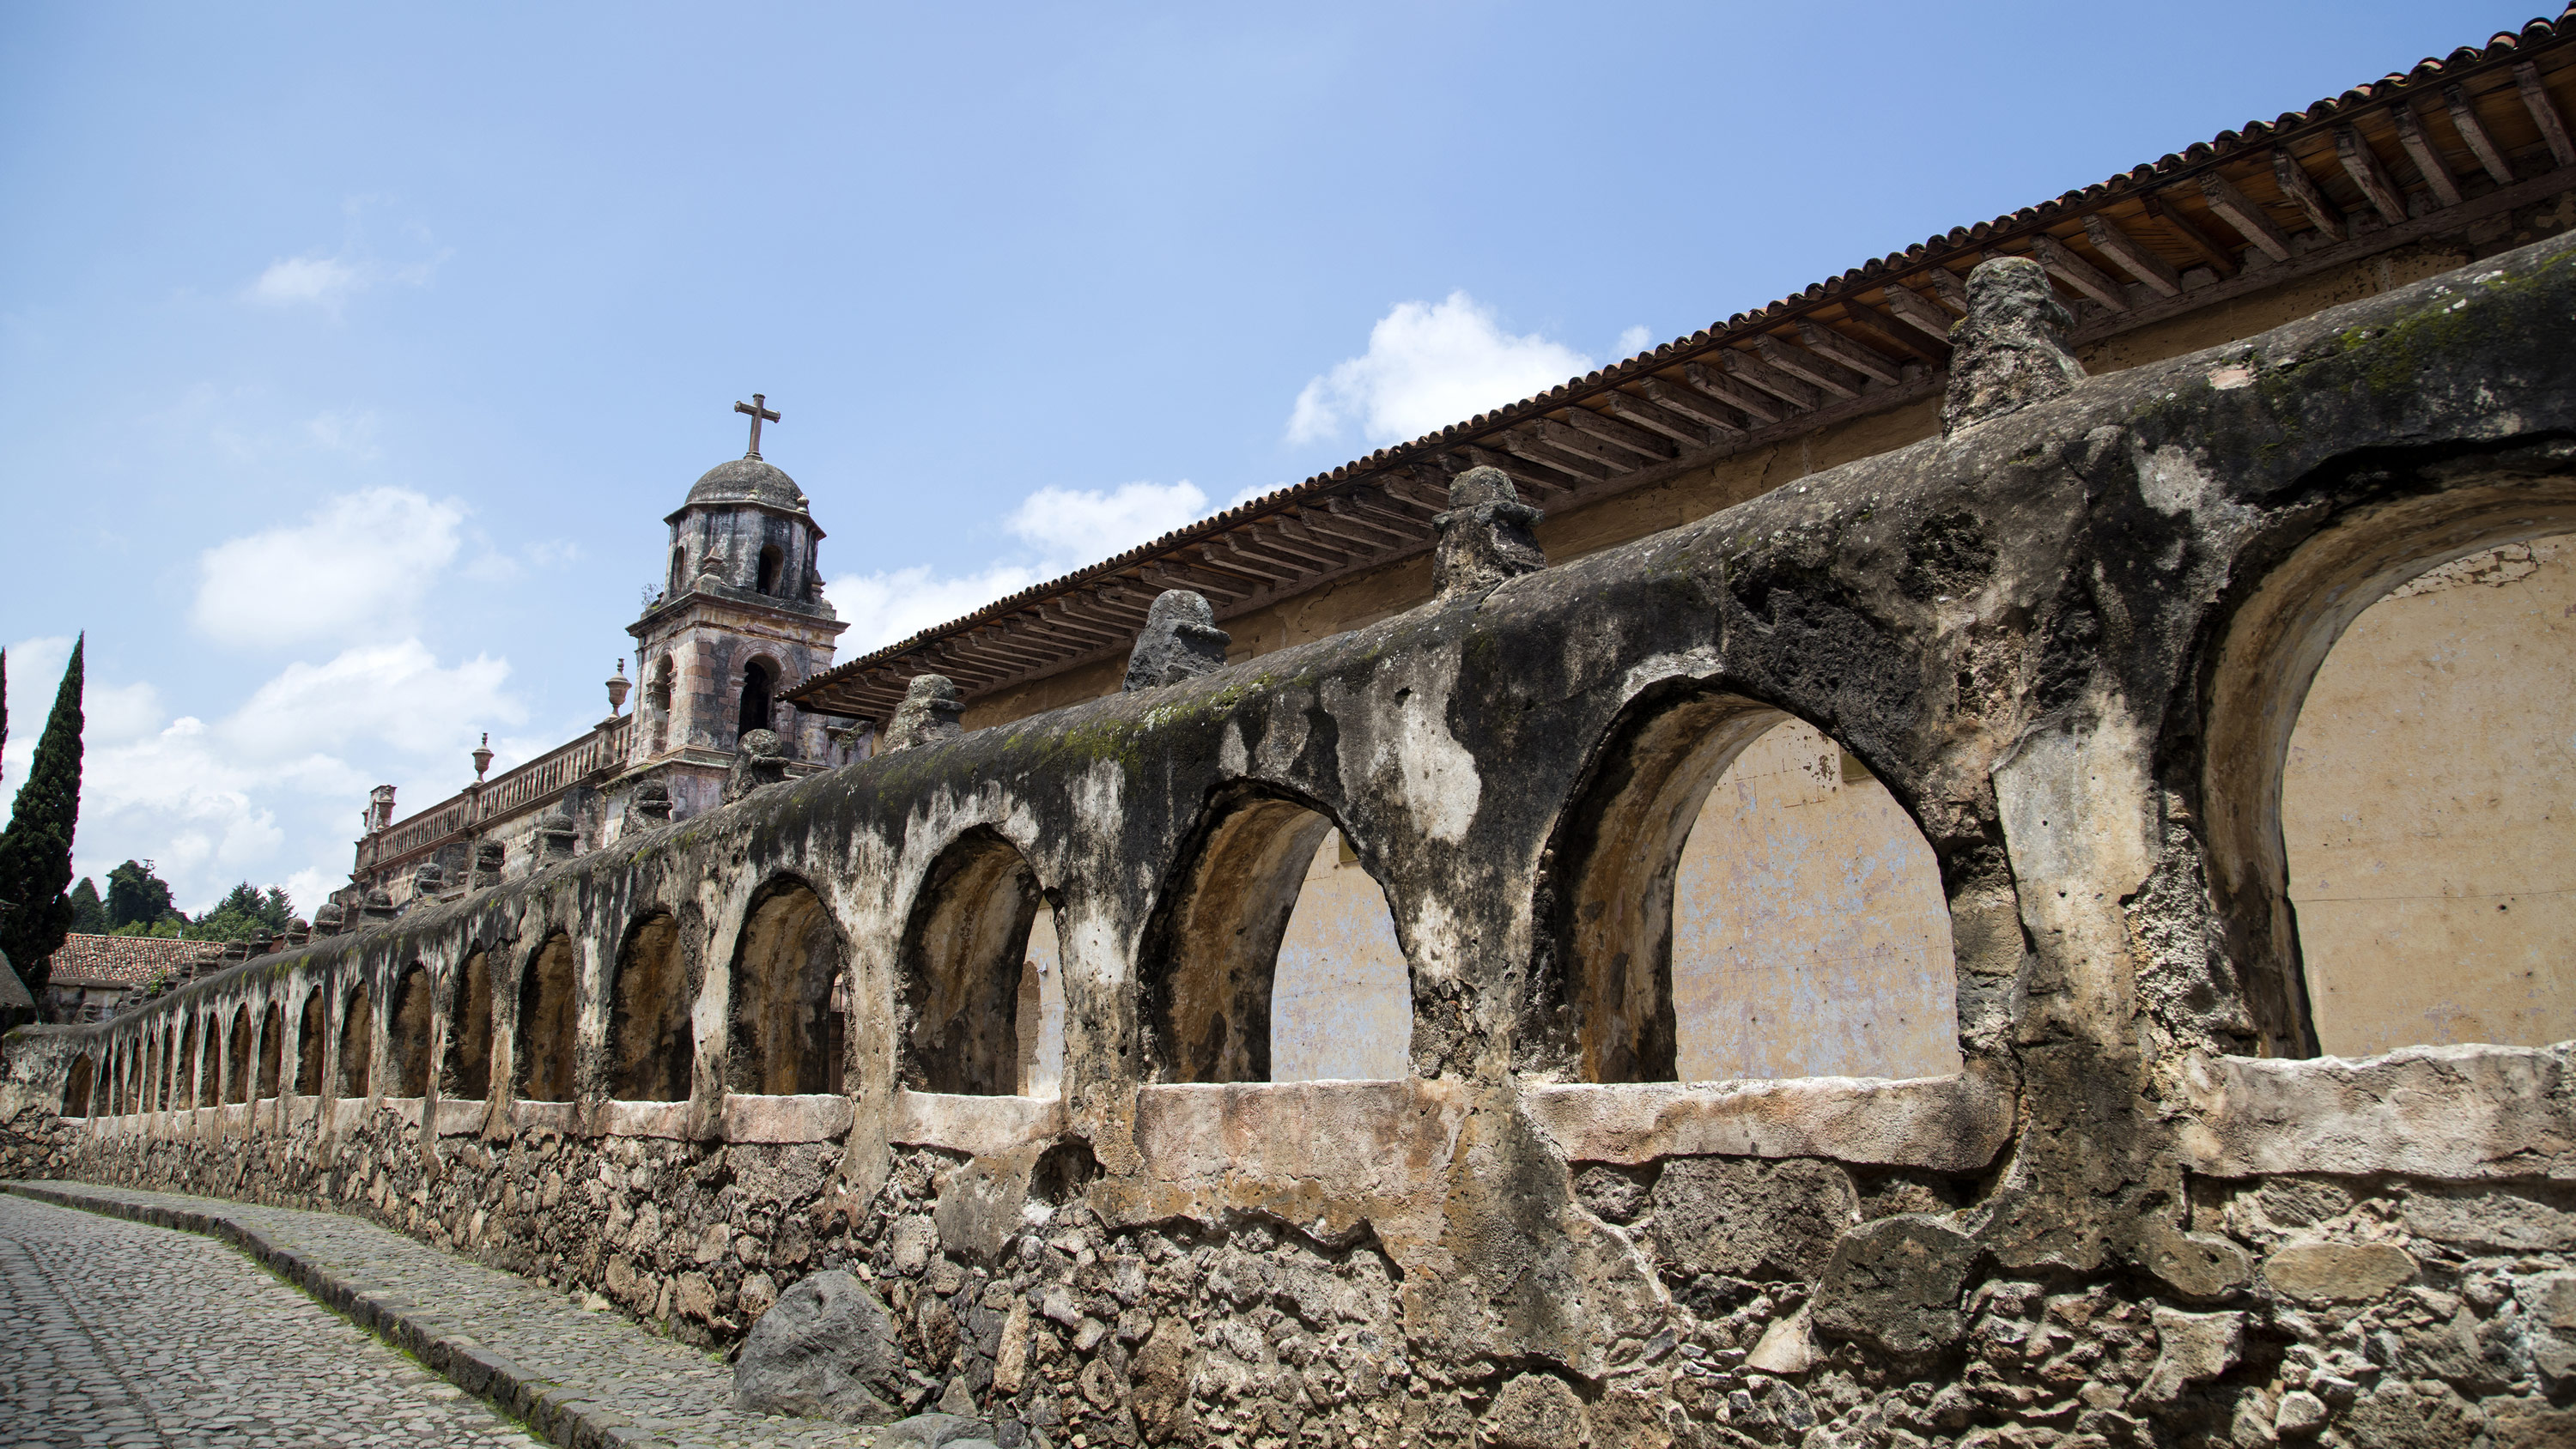 10 Most Beautiful Small Towns In Mexico Cnn Travel,Living Room Rustic Contemporary Interior Design